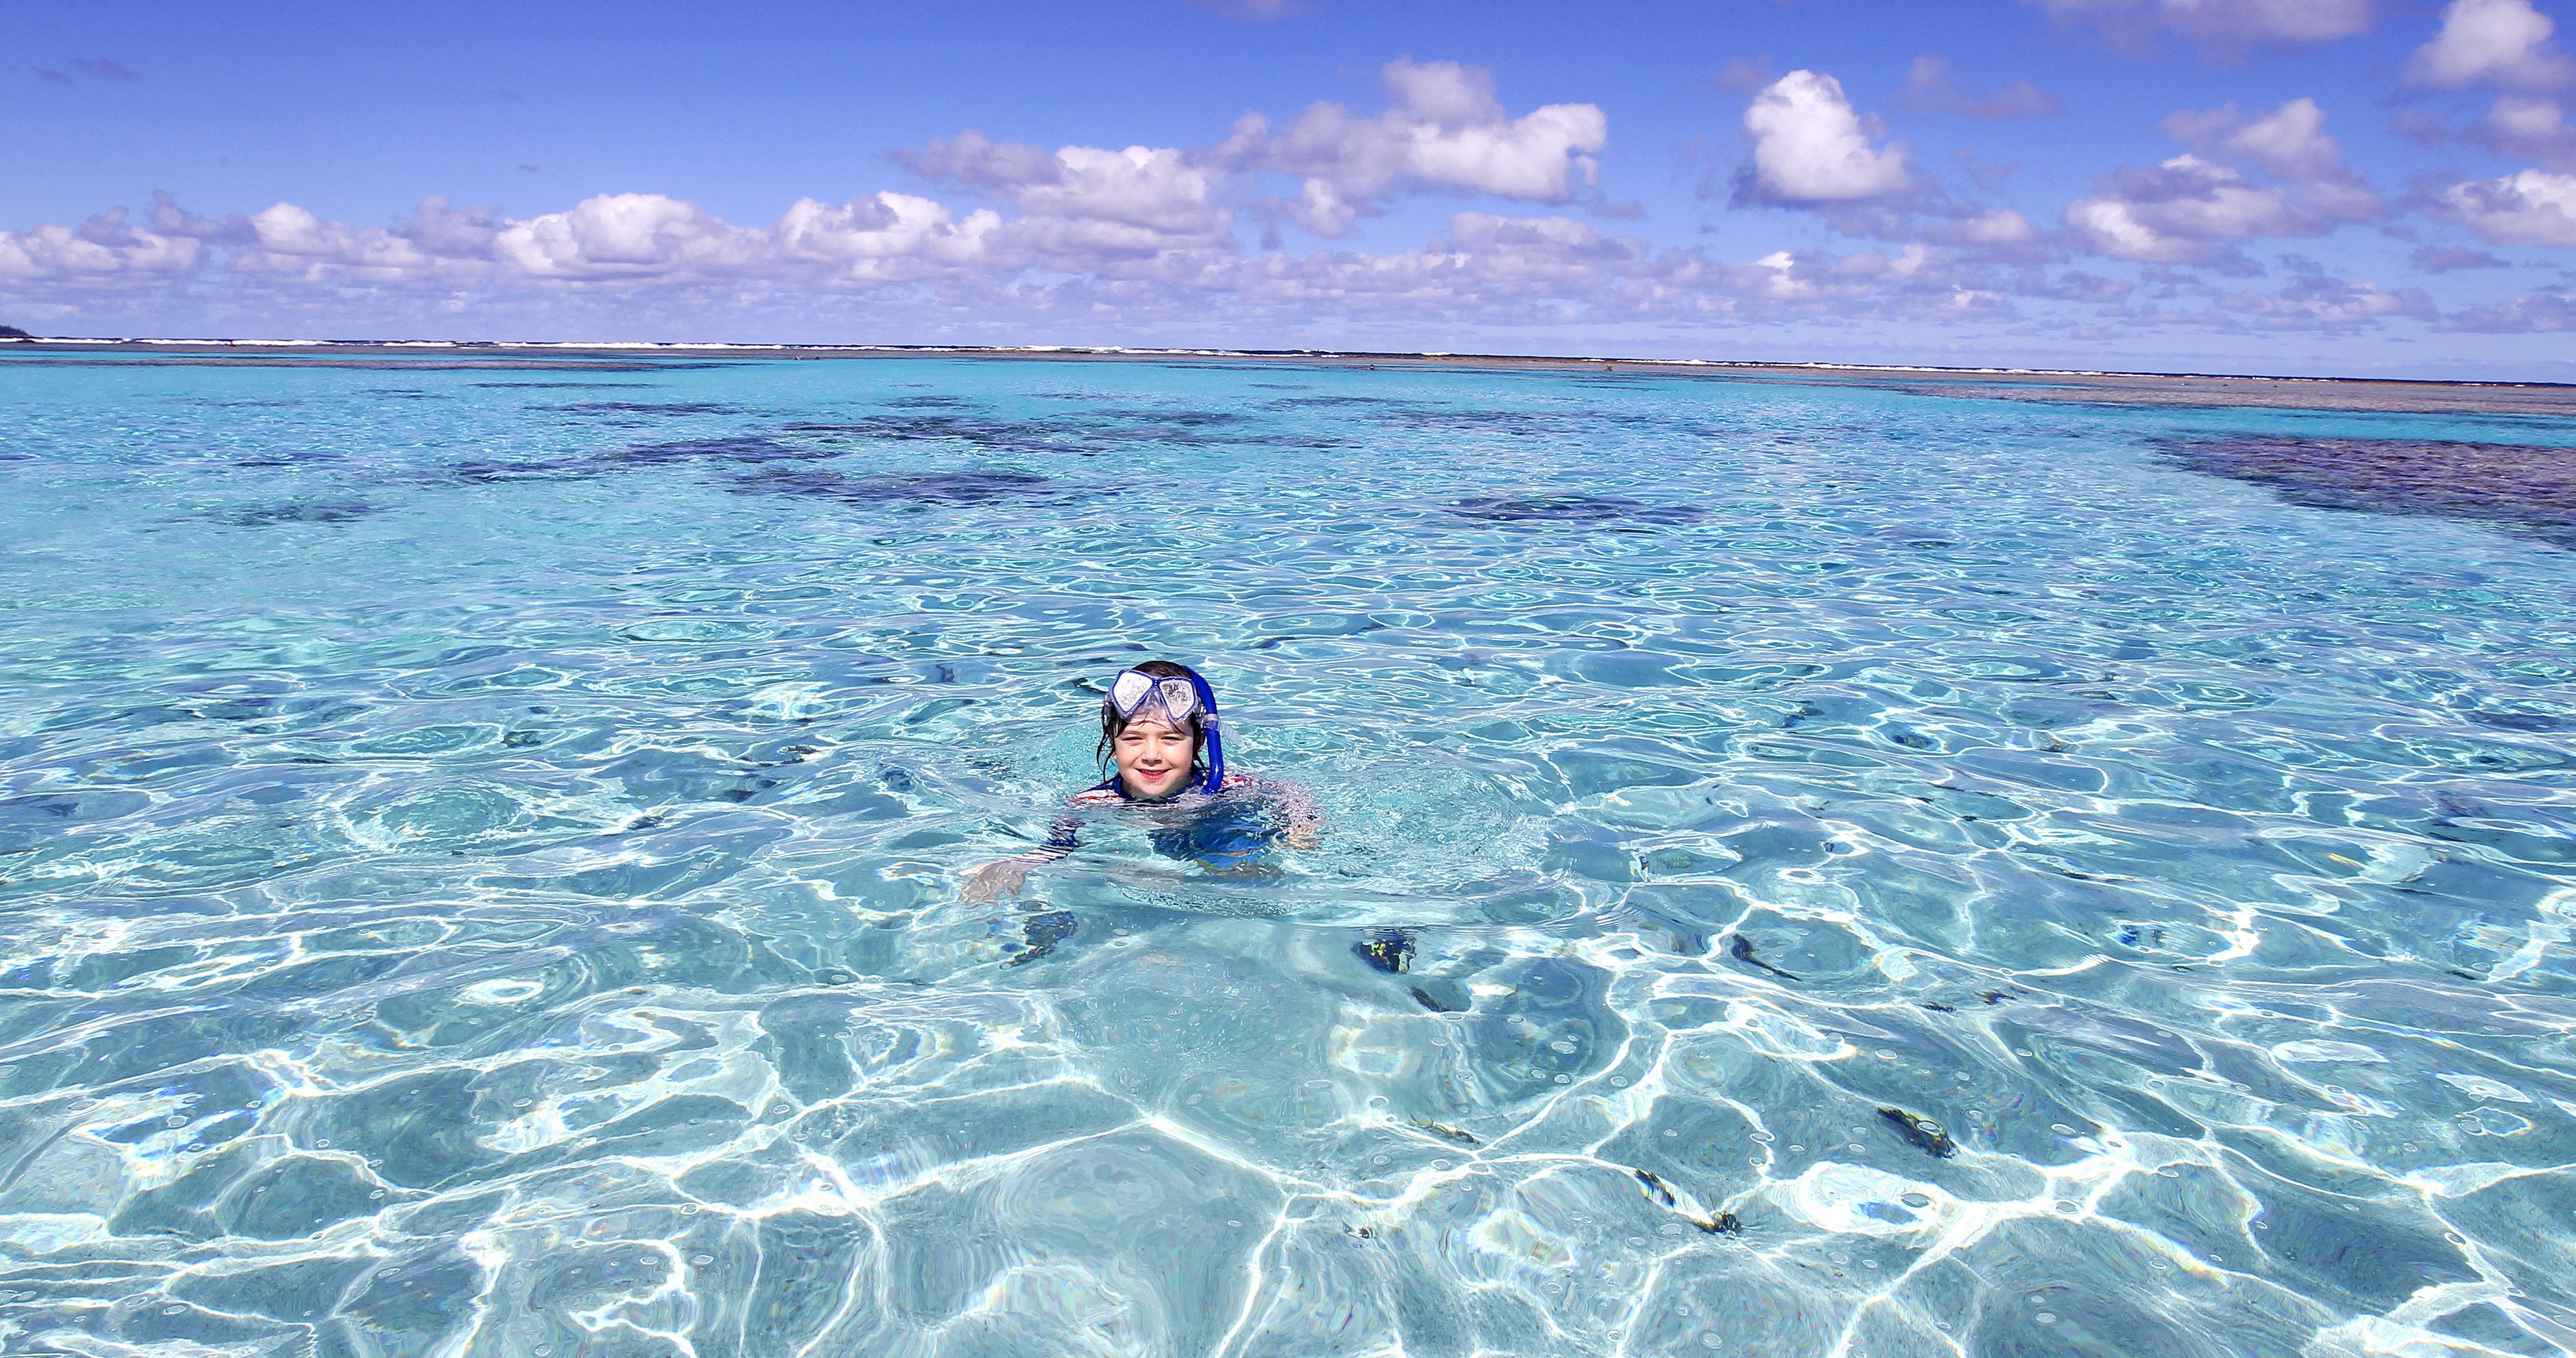 swim-snorkel-yejele-beach-new-caledonia-travelling-with-kids-4